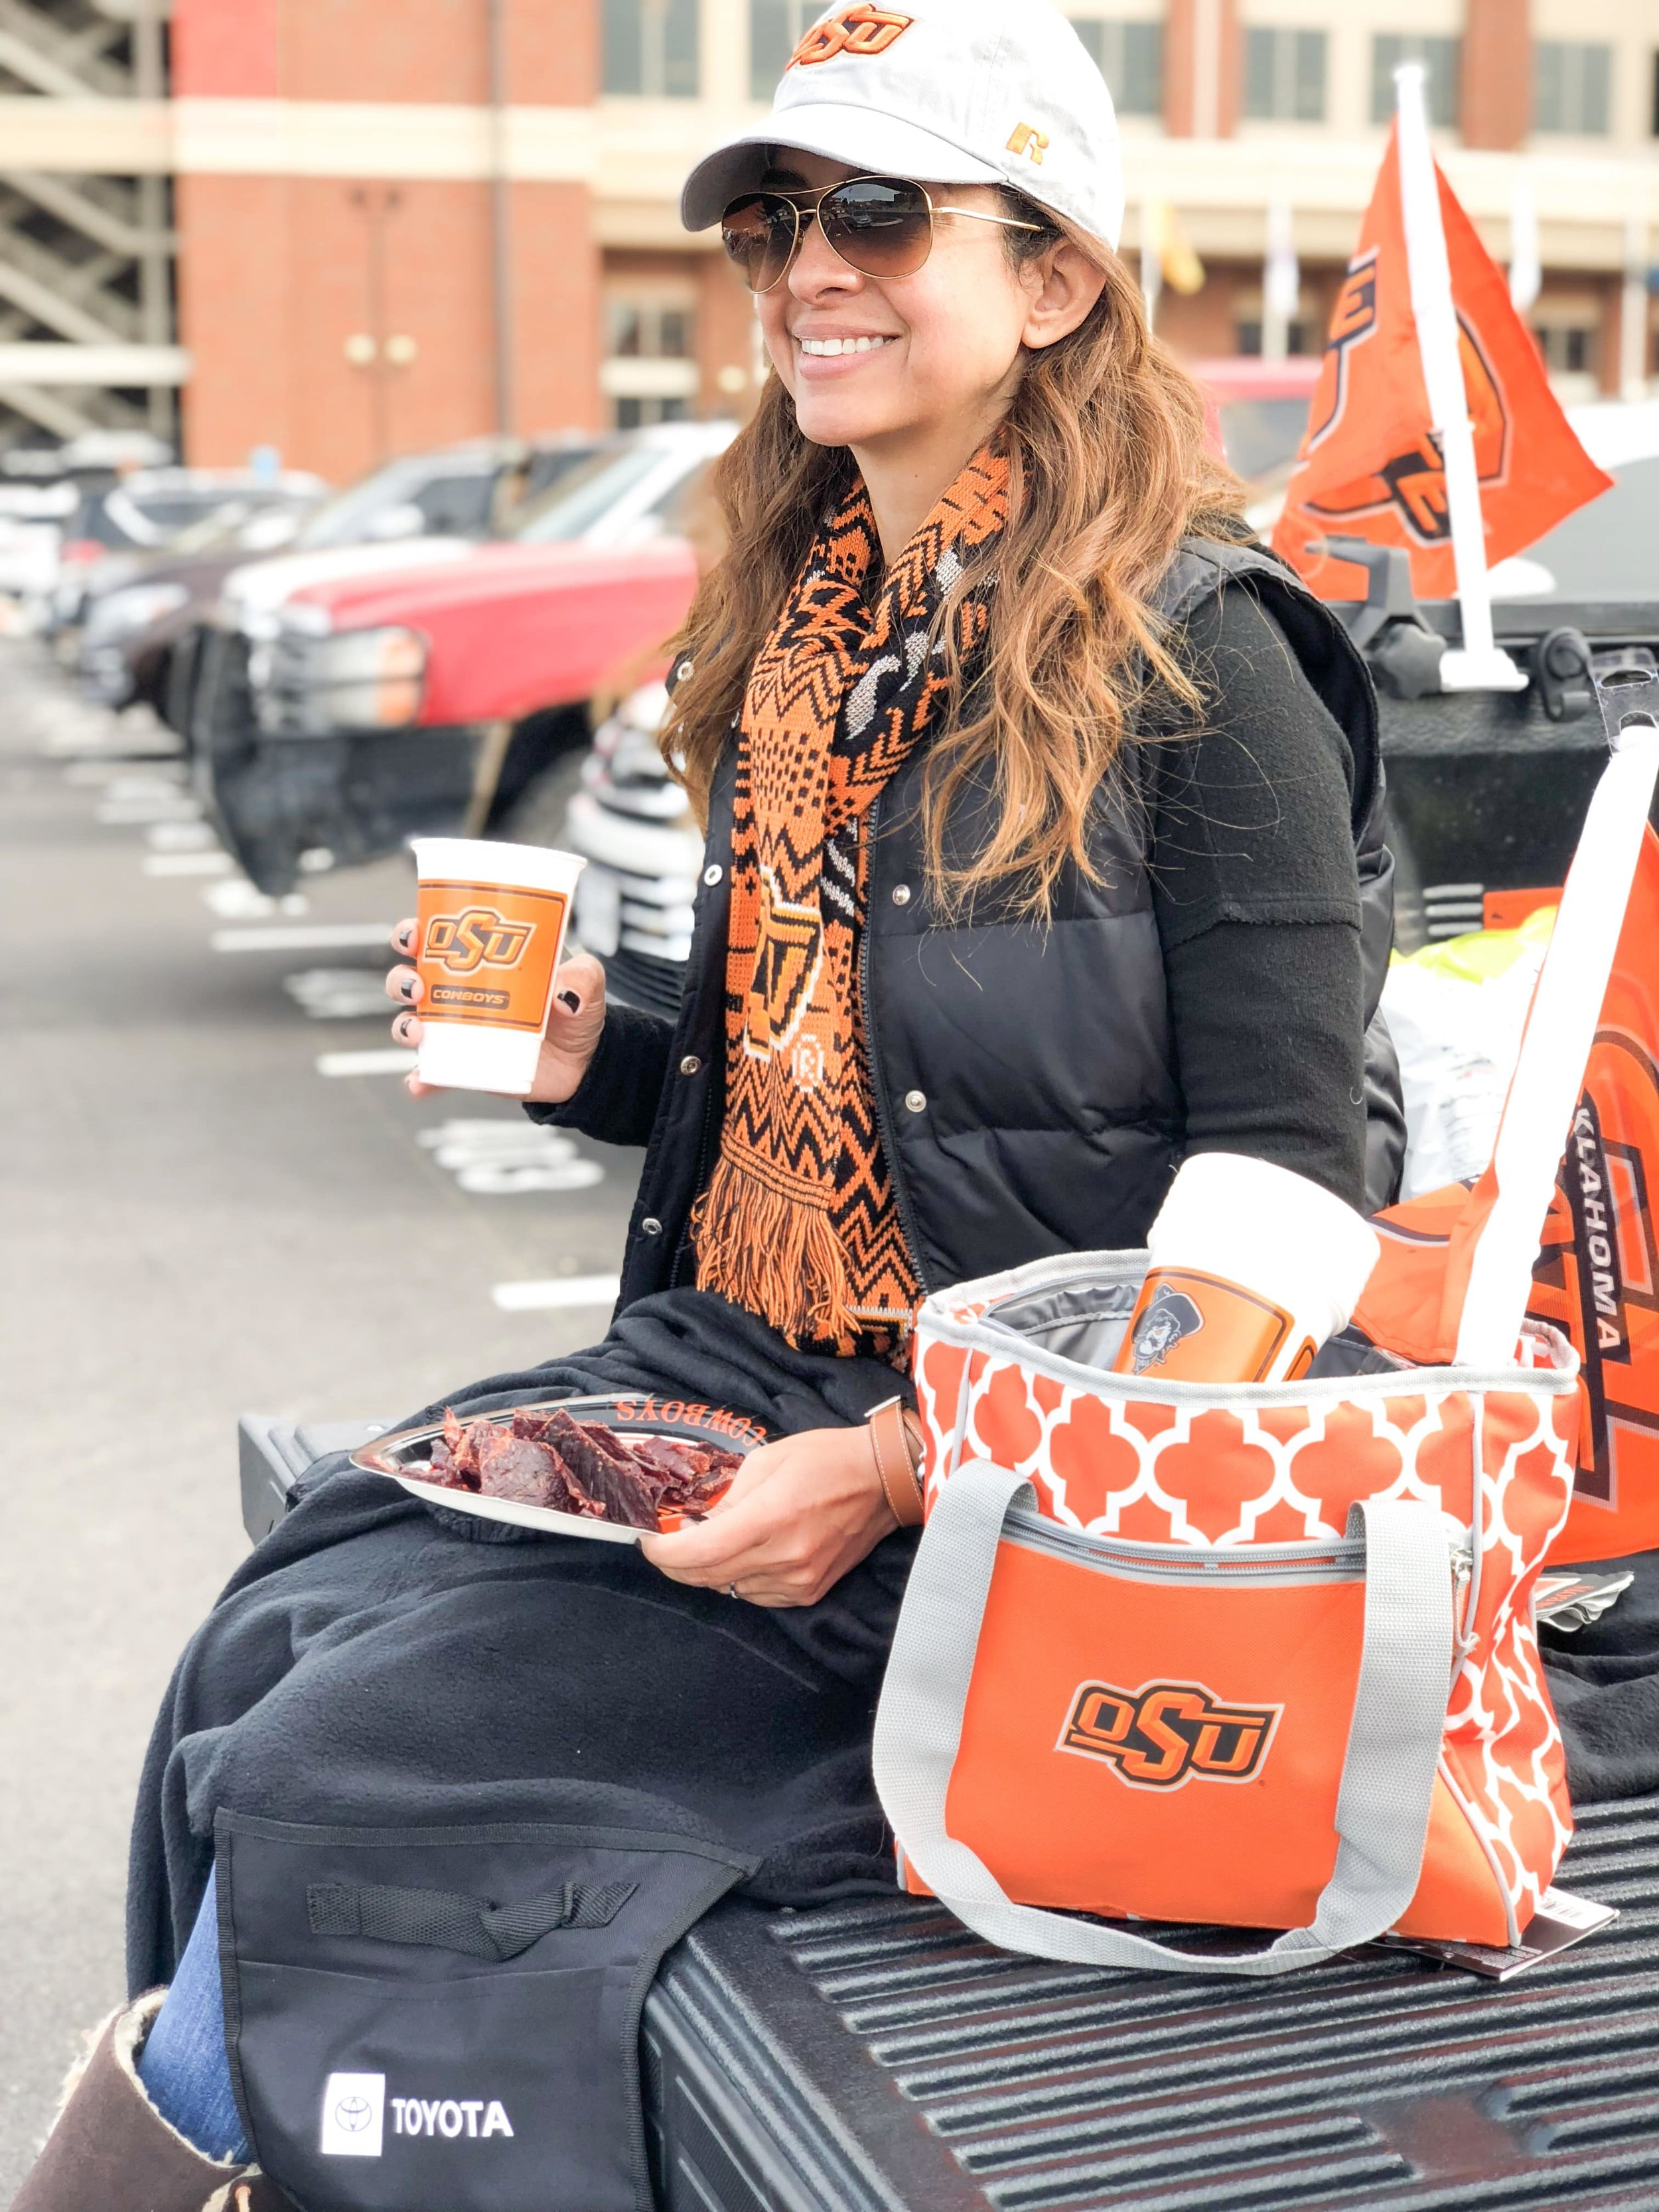 A great time tailgating at the OSU vs West Virginia football game in Stillwater, OK (Photo Credit: Neaka Khalilian)